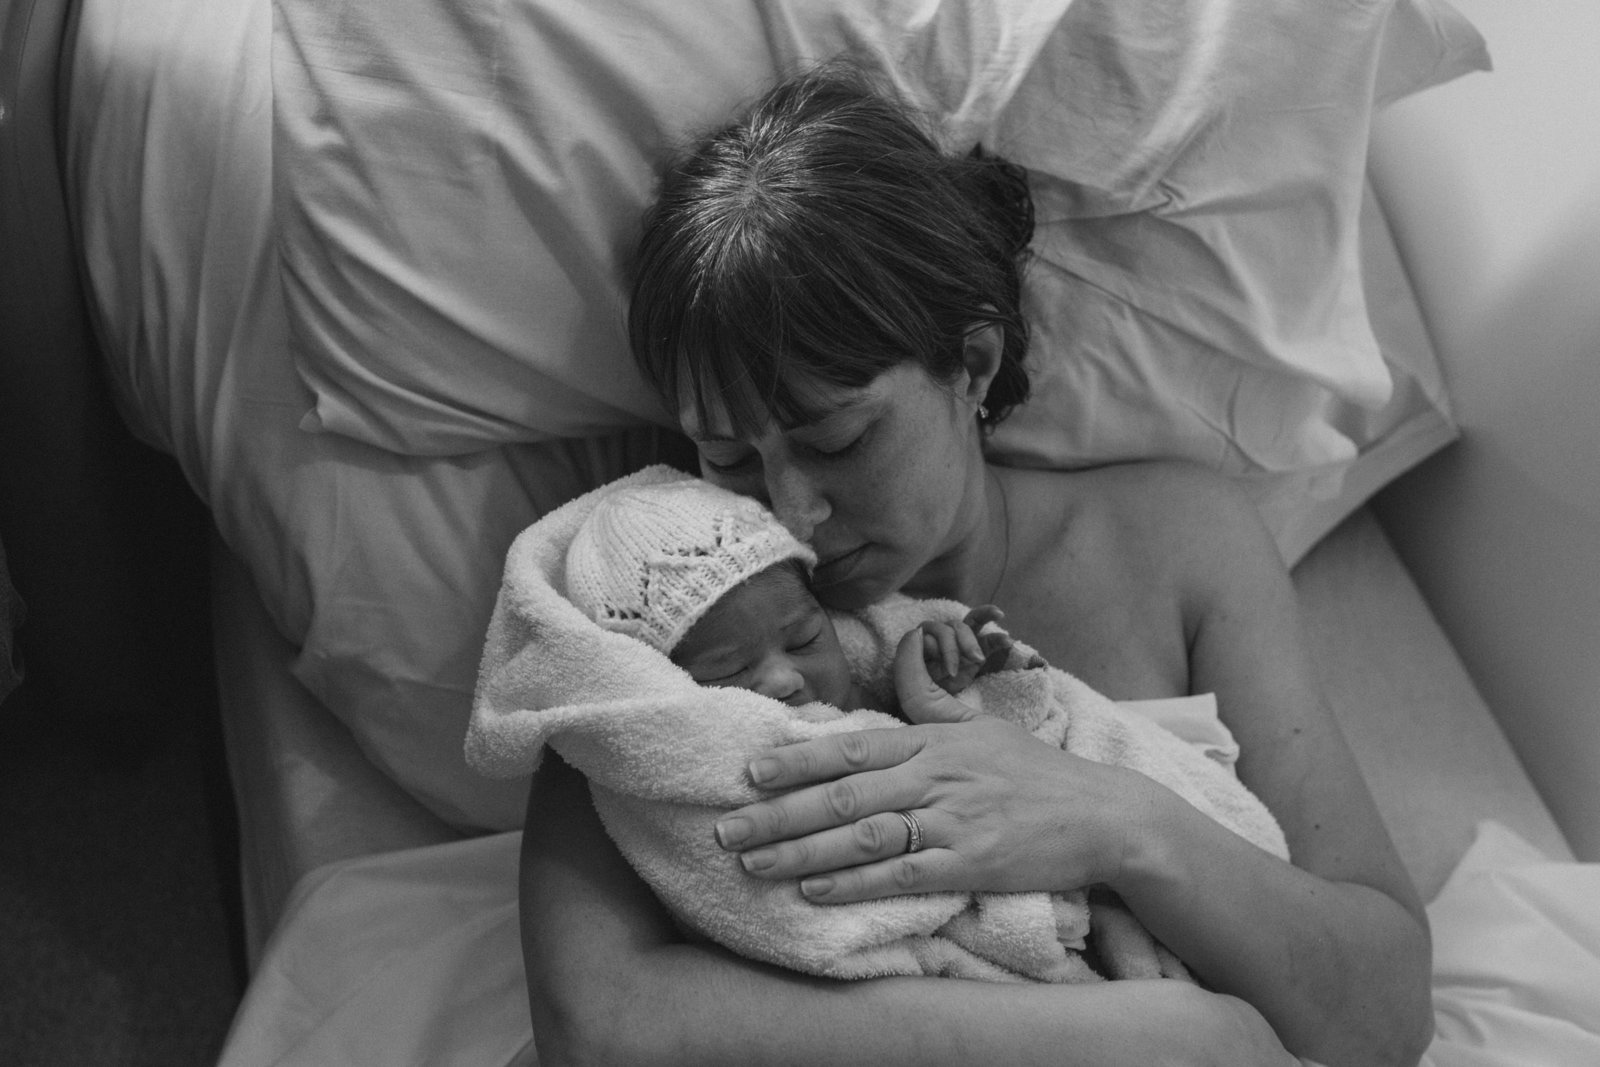 Black and white Documentary photograph of Ipswich mum holding newborn baby minutes after birth